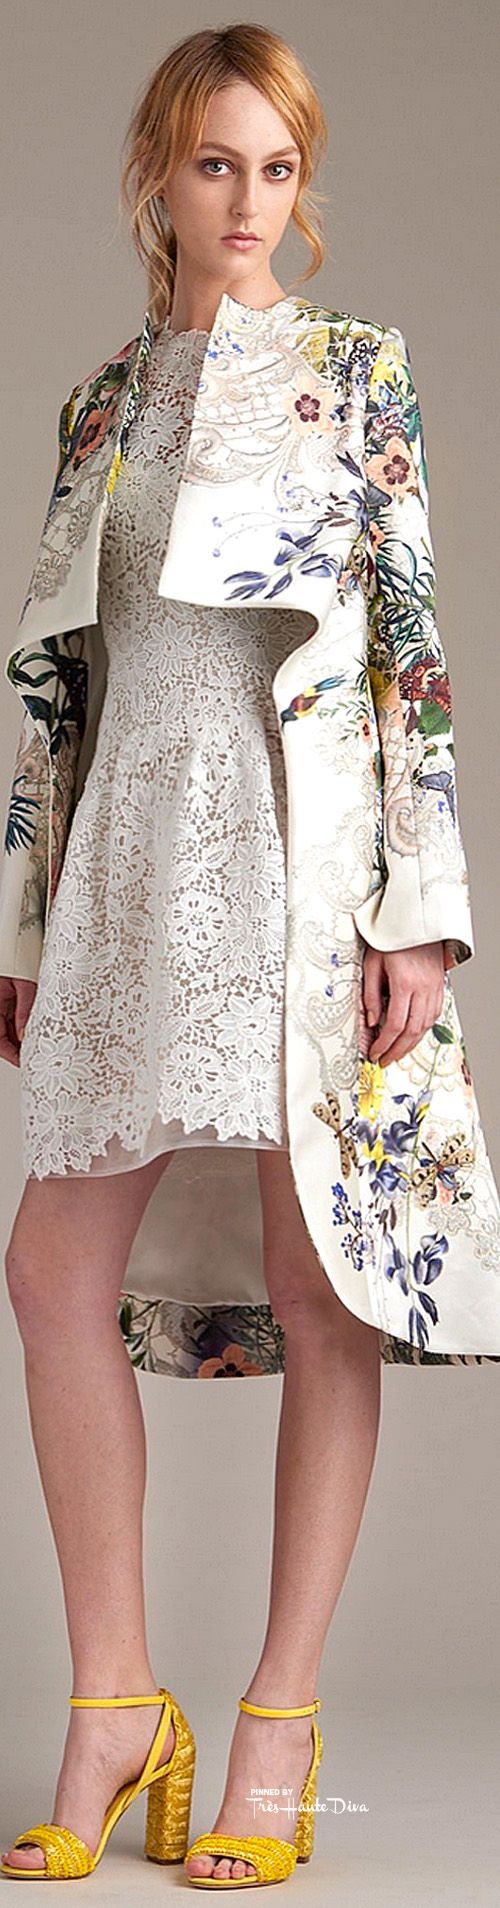 The coat jacket..the print...niceeee          Monique Lhuillier Resort 2016 ♔ Très Haute Diva ♔ http://www.style.com/fashion-shows/resort-2016